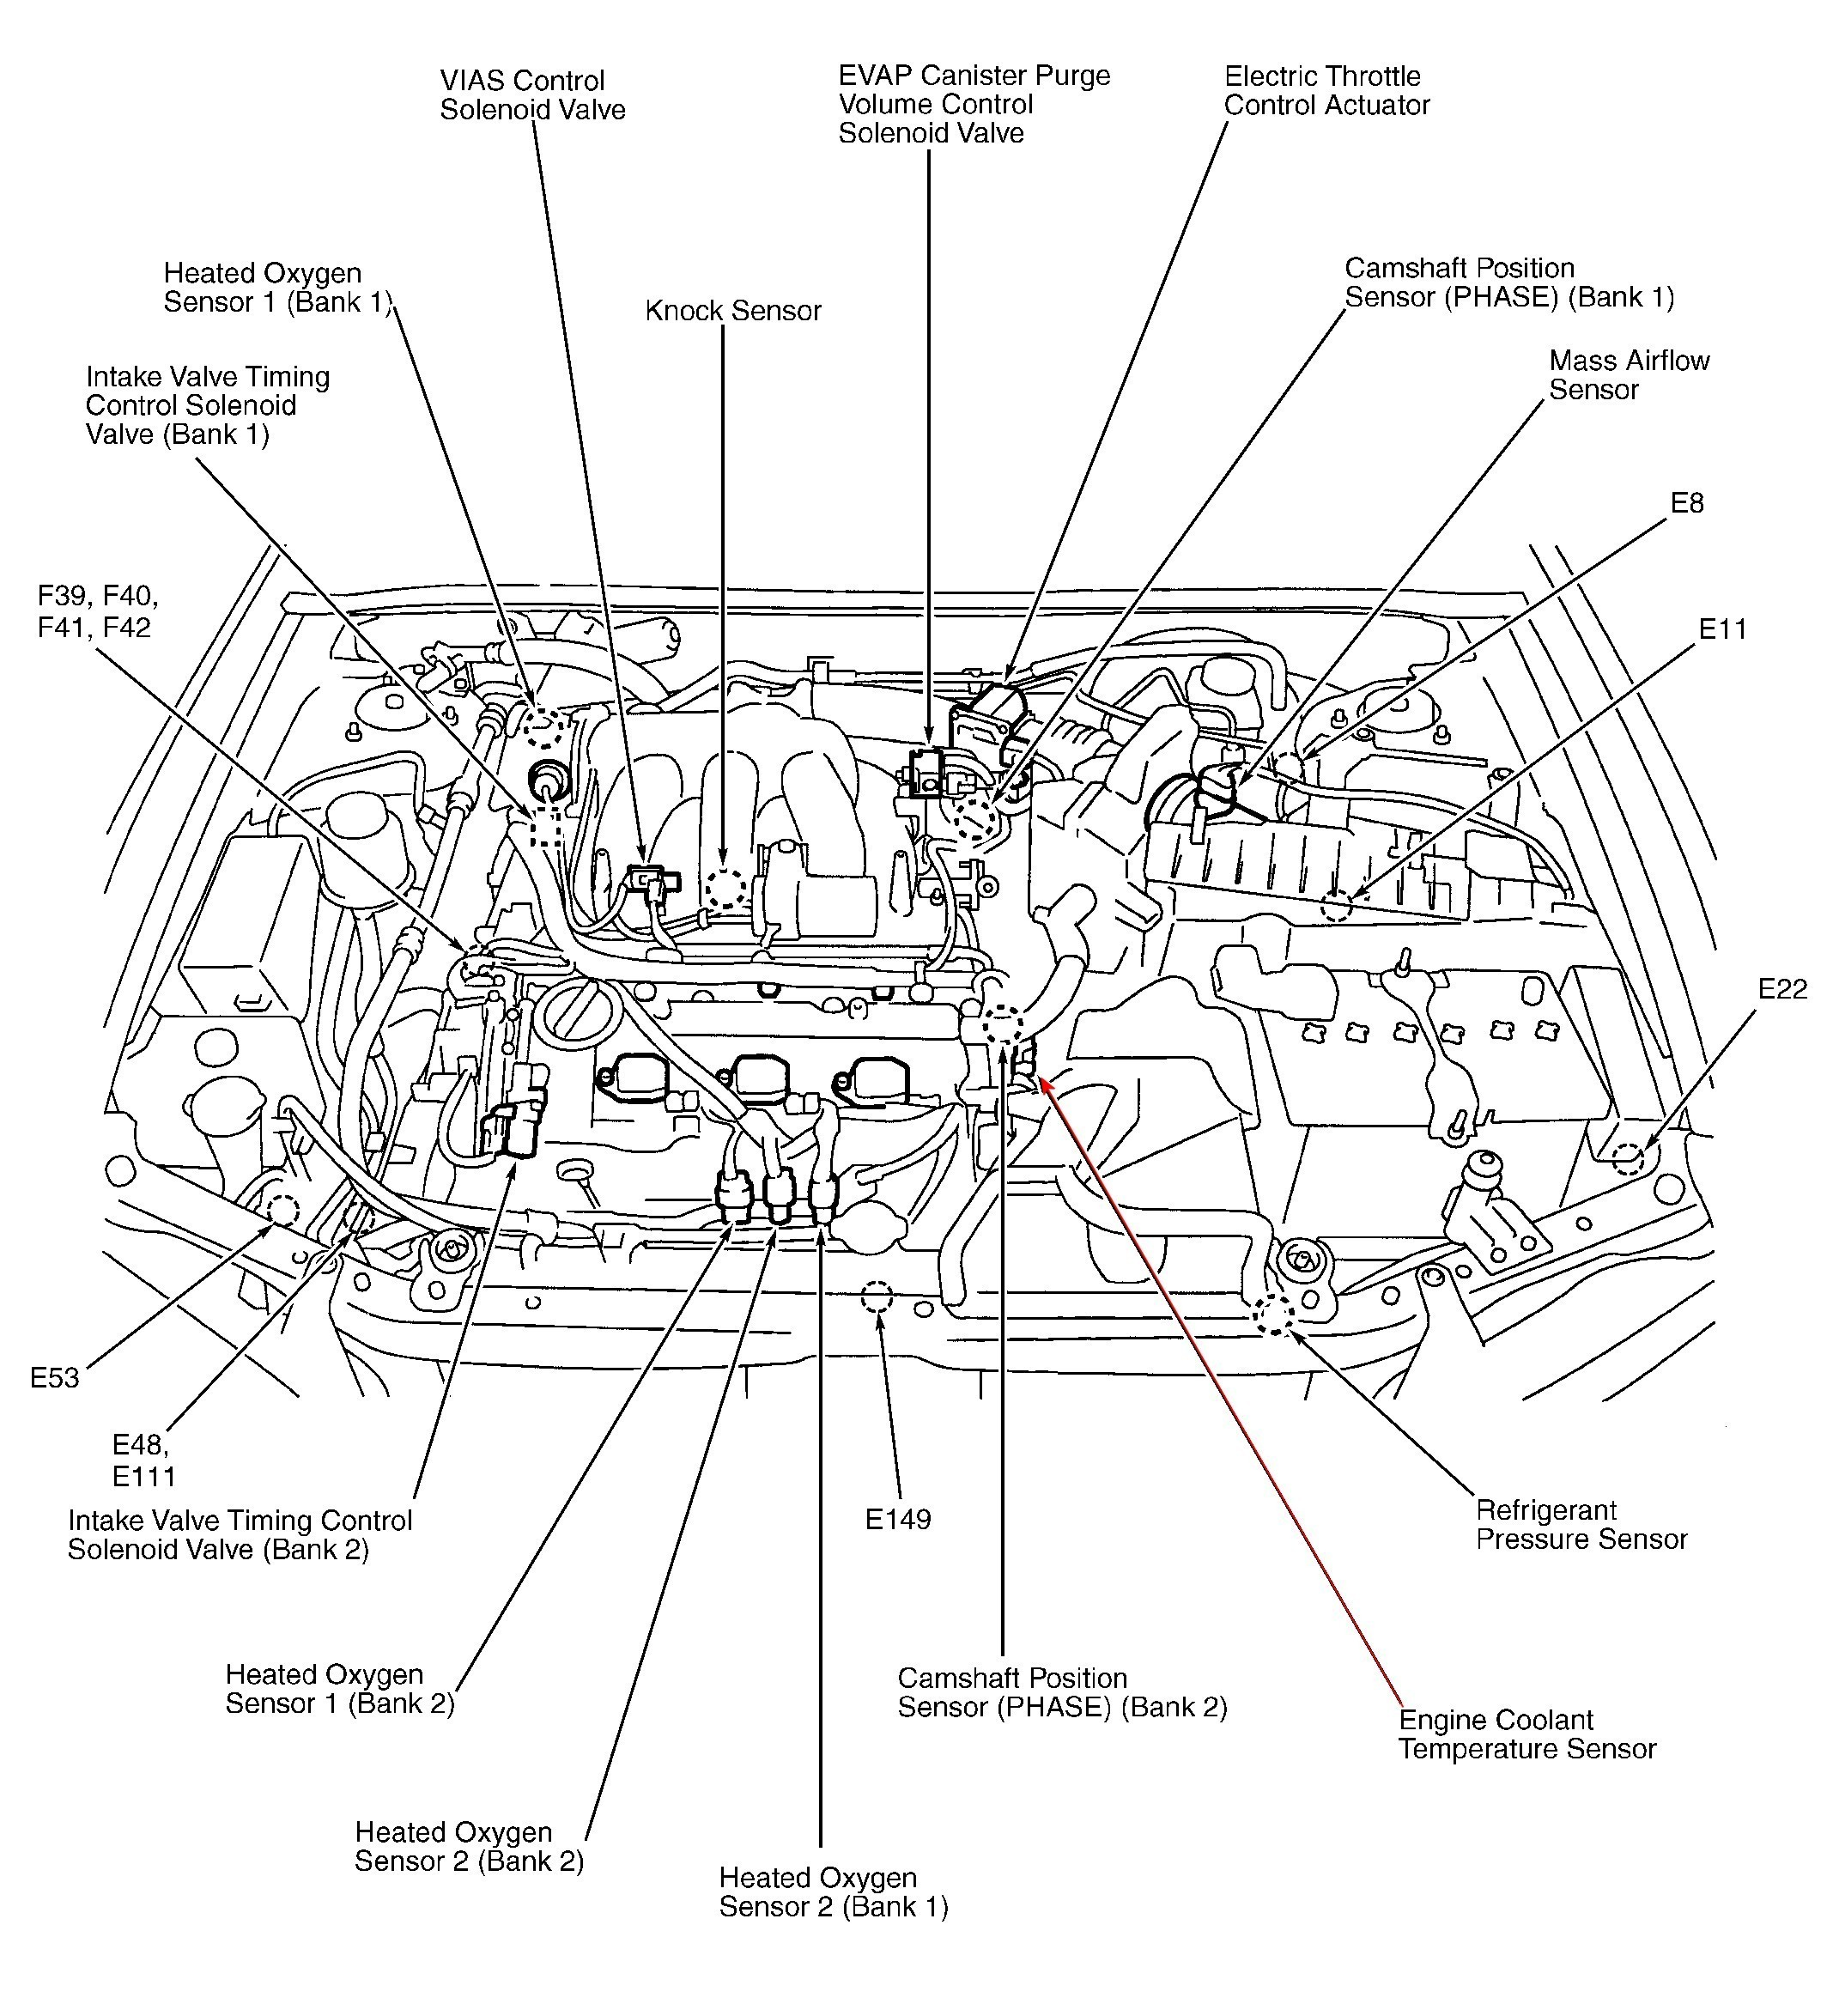 1998 Nissan Altima Engine Diagram Take A Look About 2000 Nissan Maxima Engine with Awesome Gallery Of 1998 Nissan Altima Engine Diagram